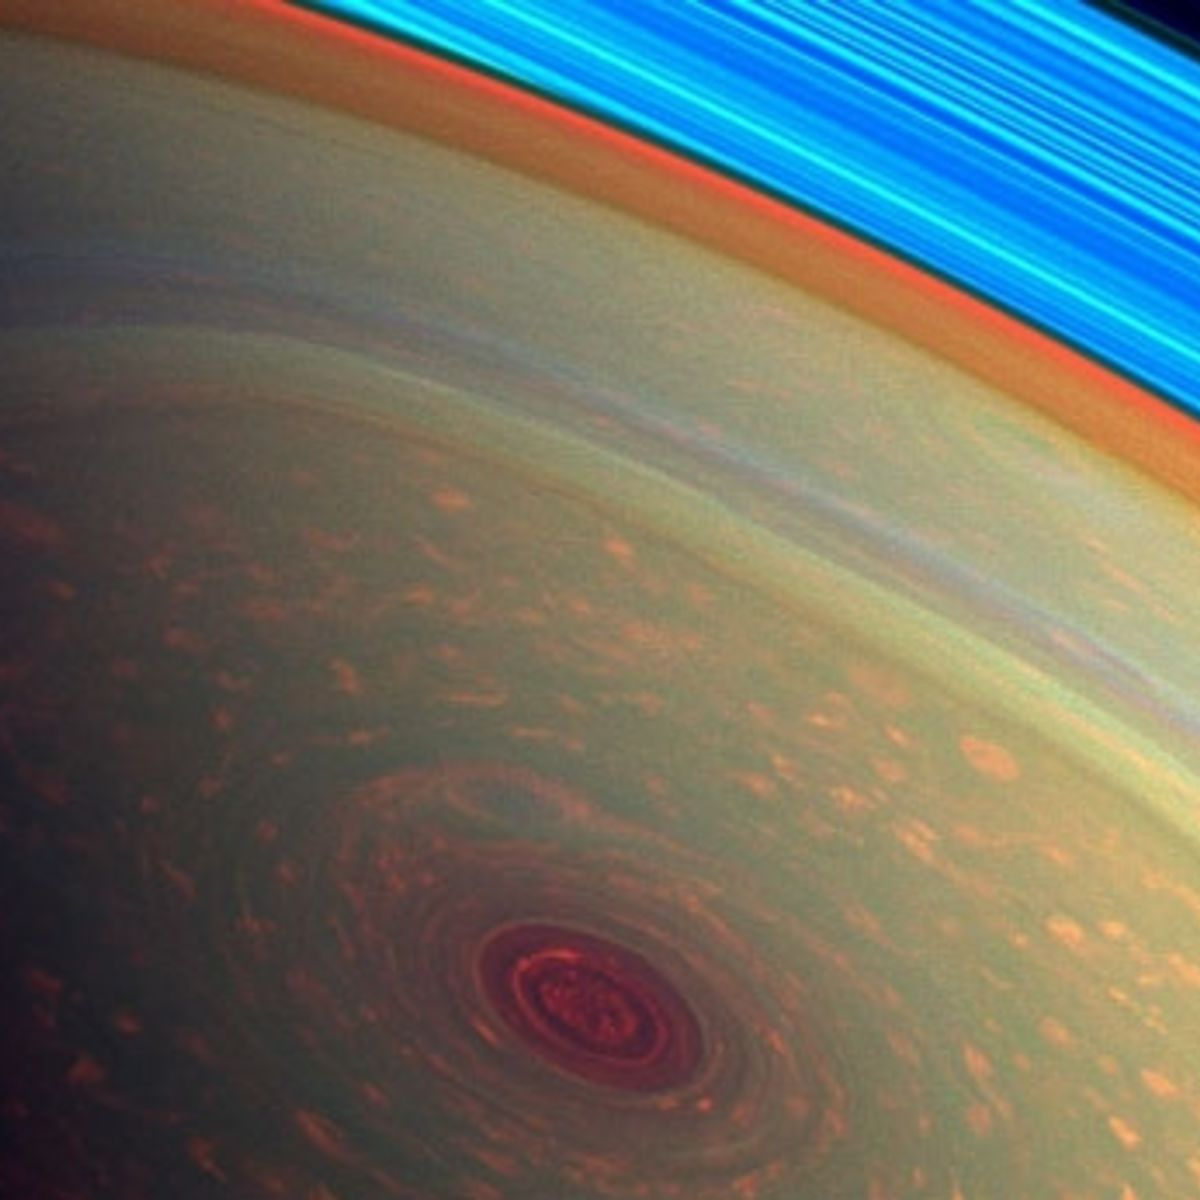 cassini_saturn_hex_color.jpg.CROP.rectangle-large.jpg